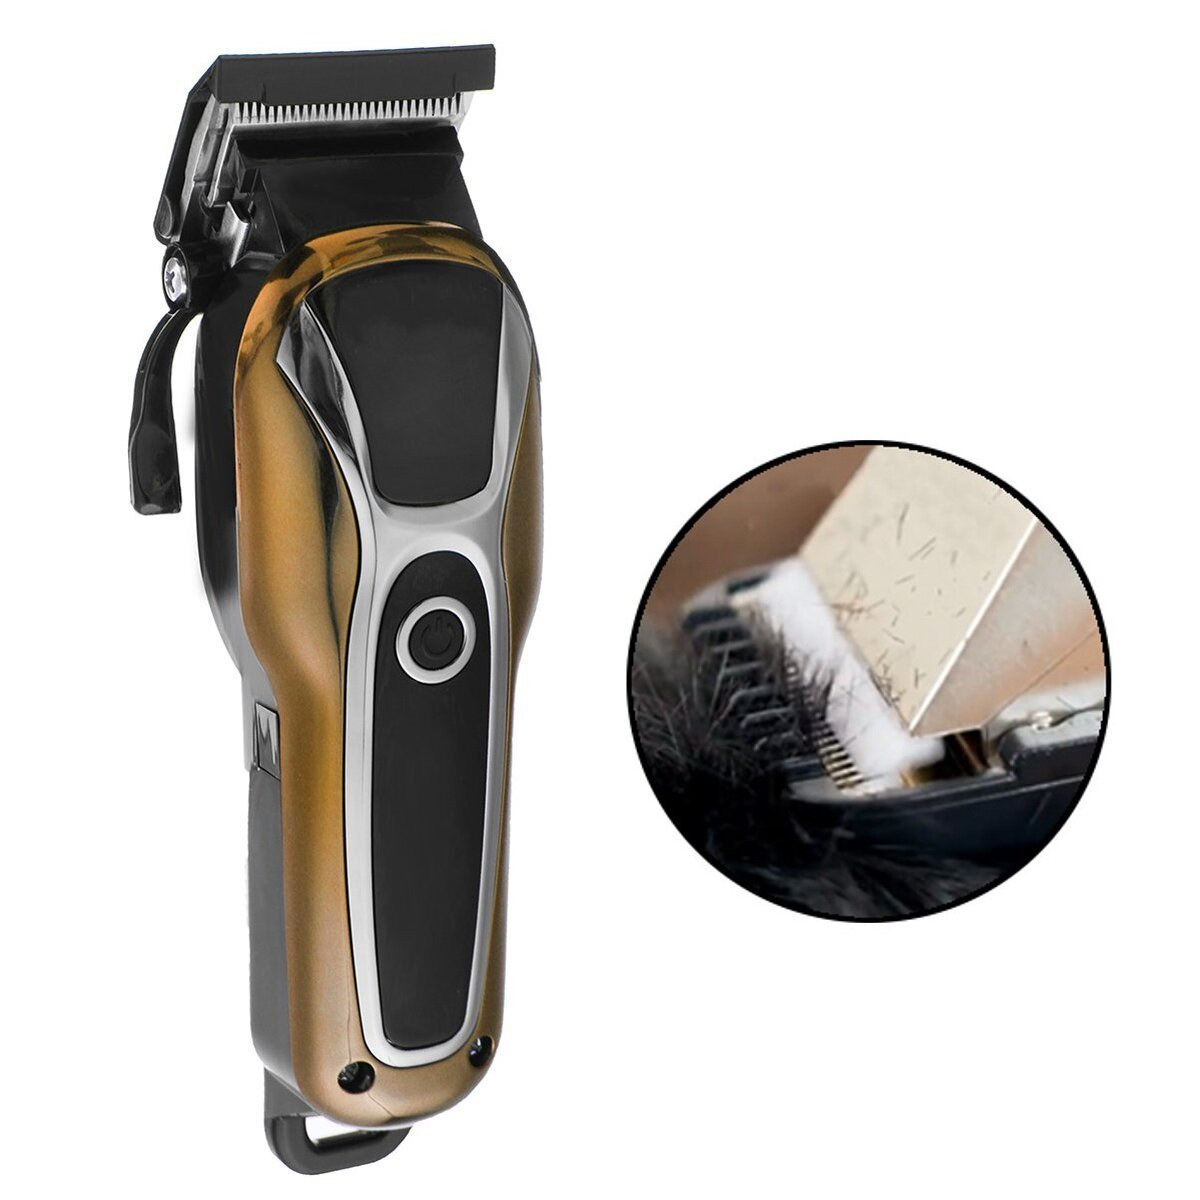 Surker Professional Cordless Hair Clipper Barber Hair Cutting Machine LED LCD Display Electric Hair Trimmer for Men Adult Child - 1